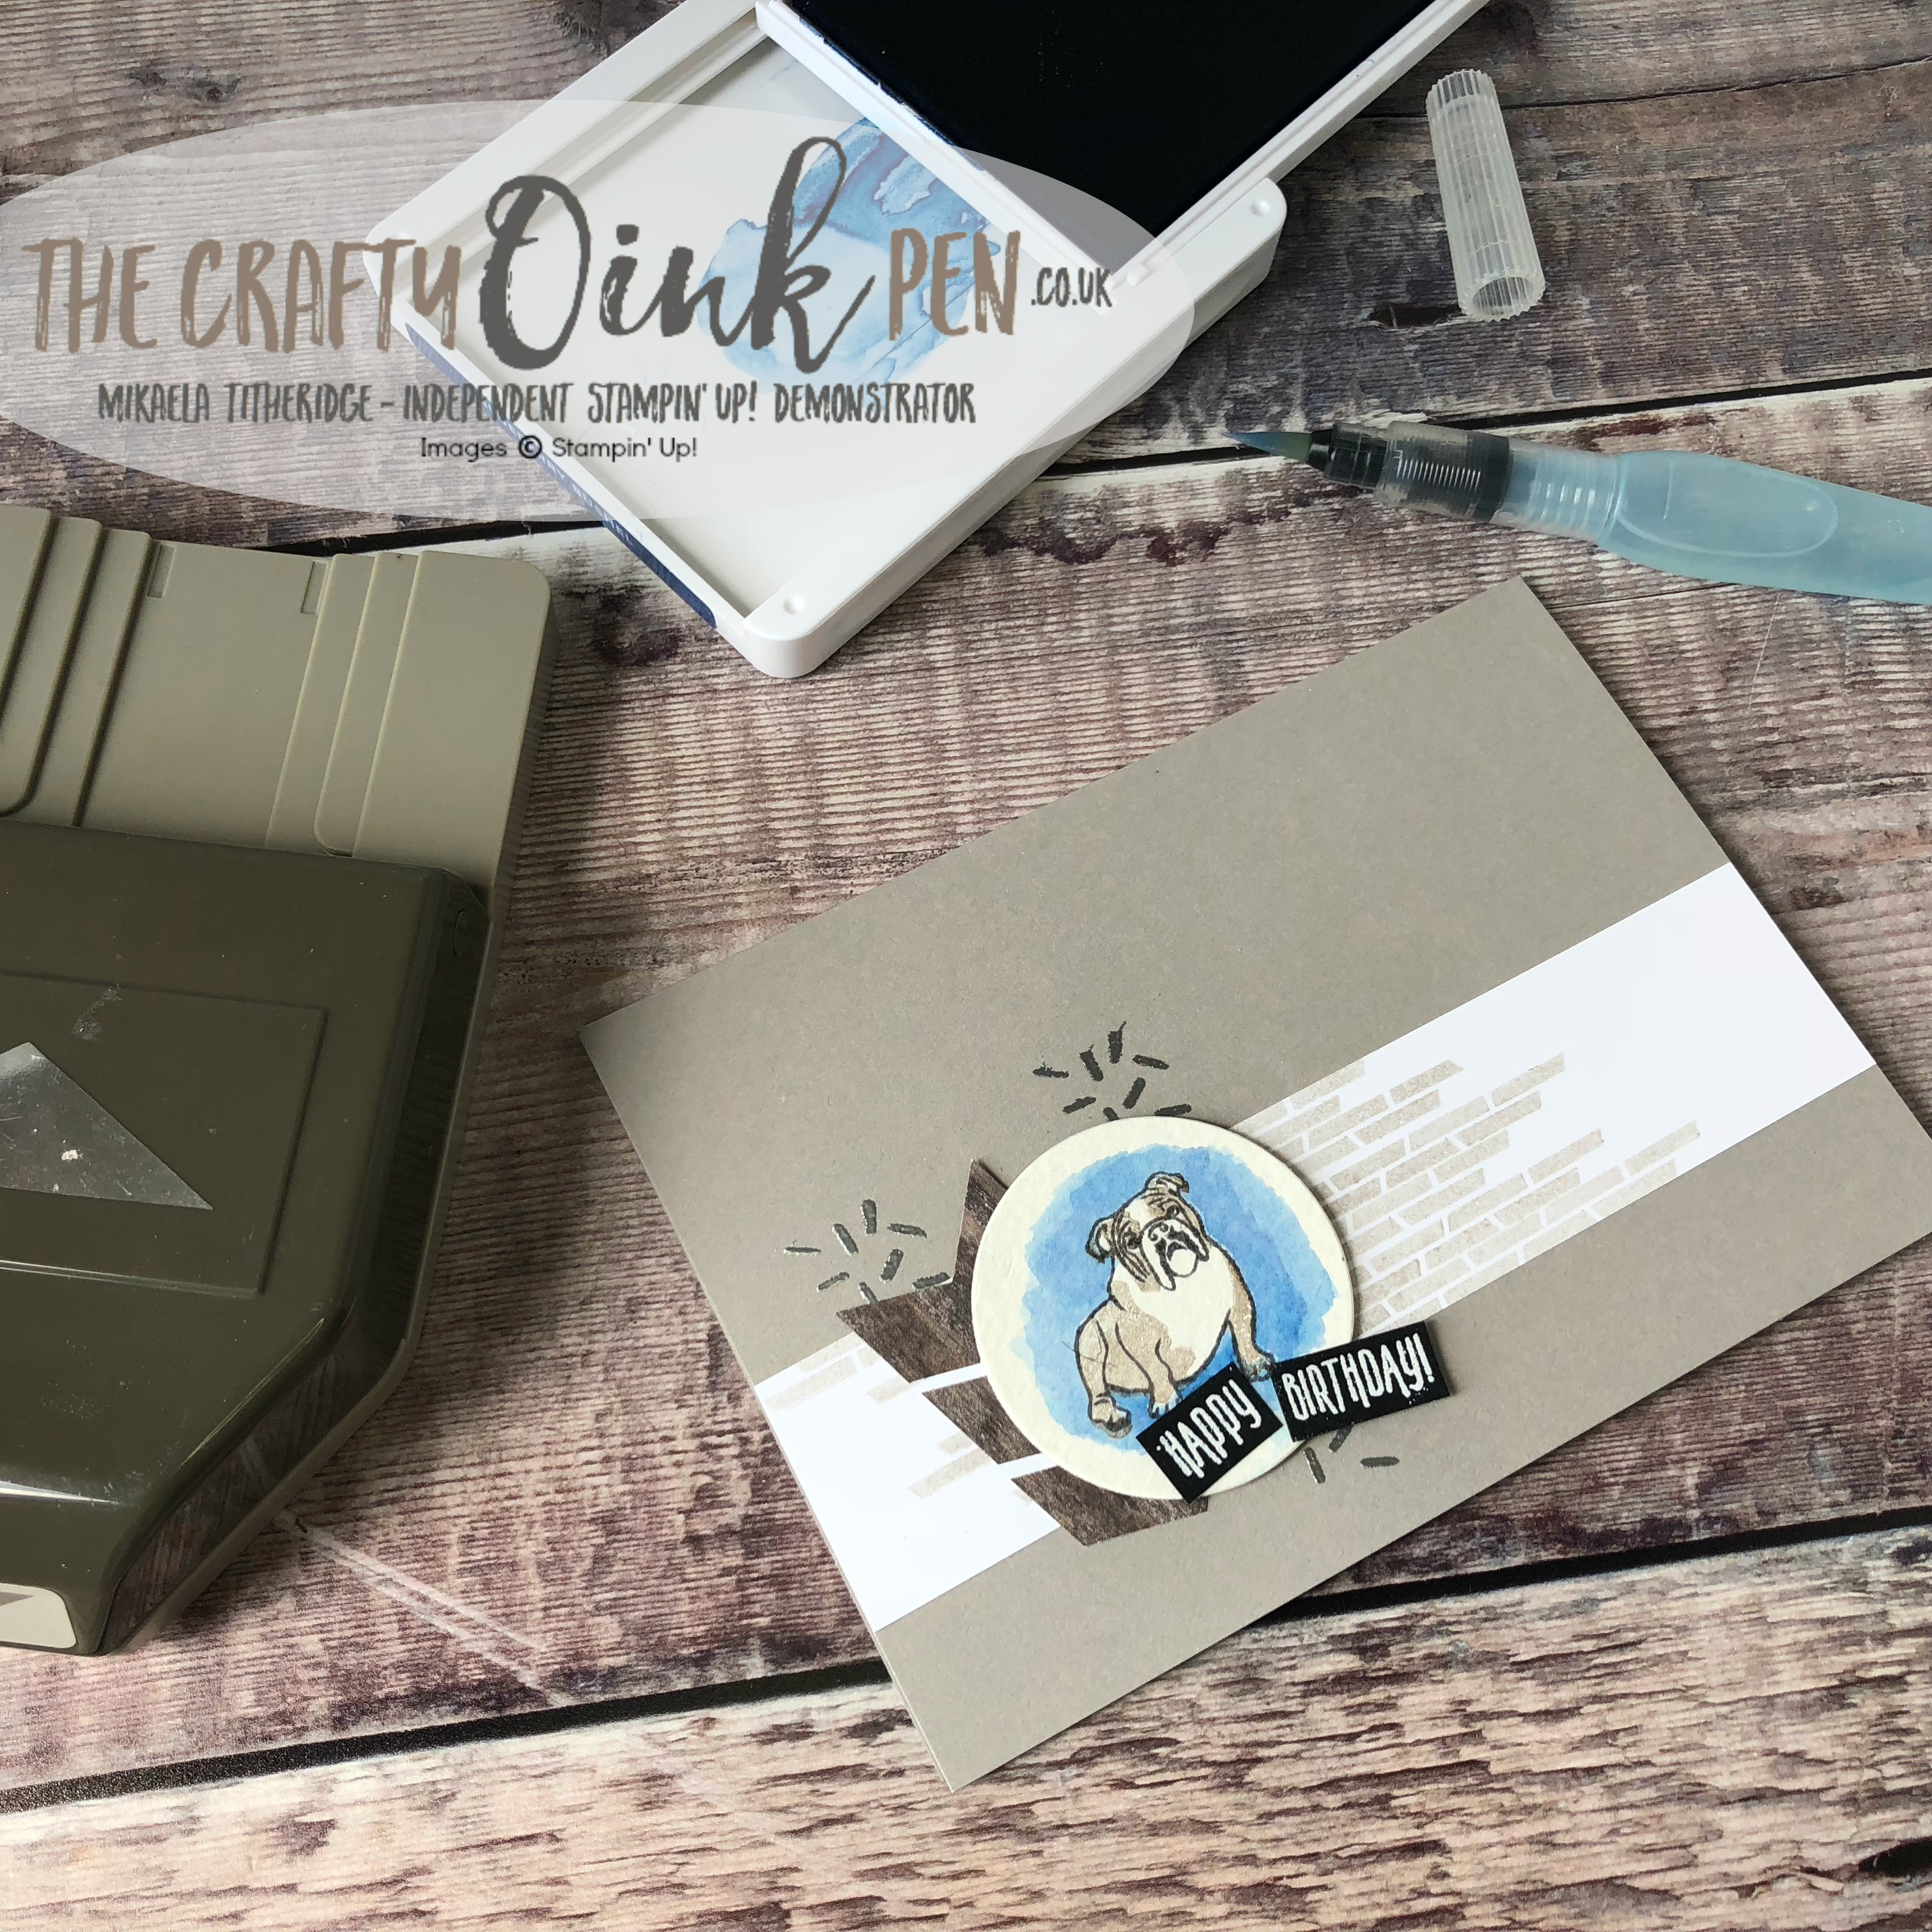 Sitting Pretty British Bull Dog meets Picture Perfect Birthday for the Creation Station Blog Hop by Mikaela Titheridge, #6UK Independent Stampin' Up! Demonstrator, The Crafty oINK Pen. Supplies available through my online store 24/7